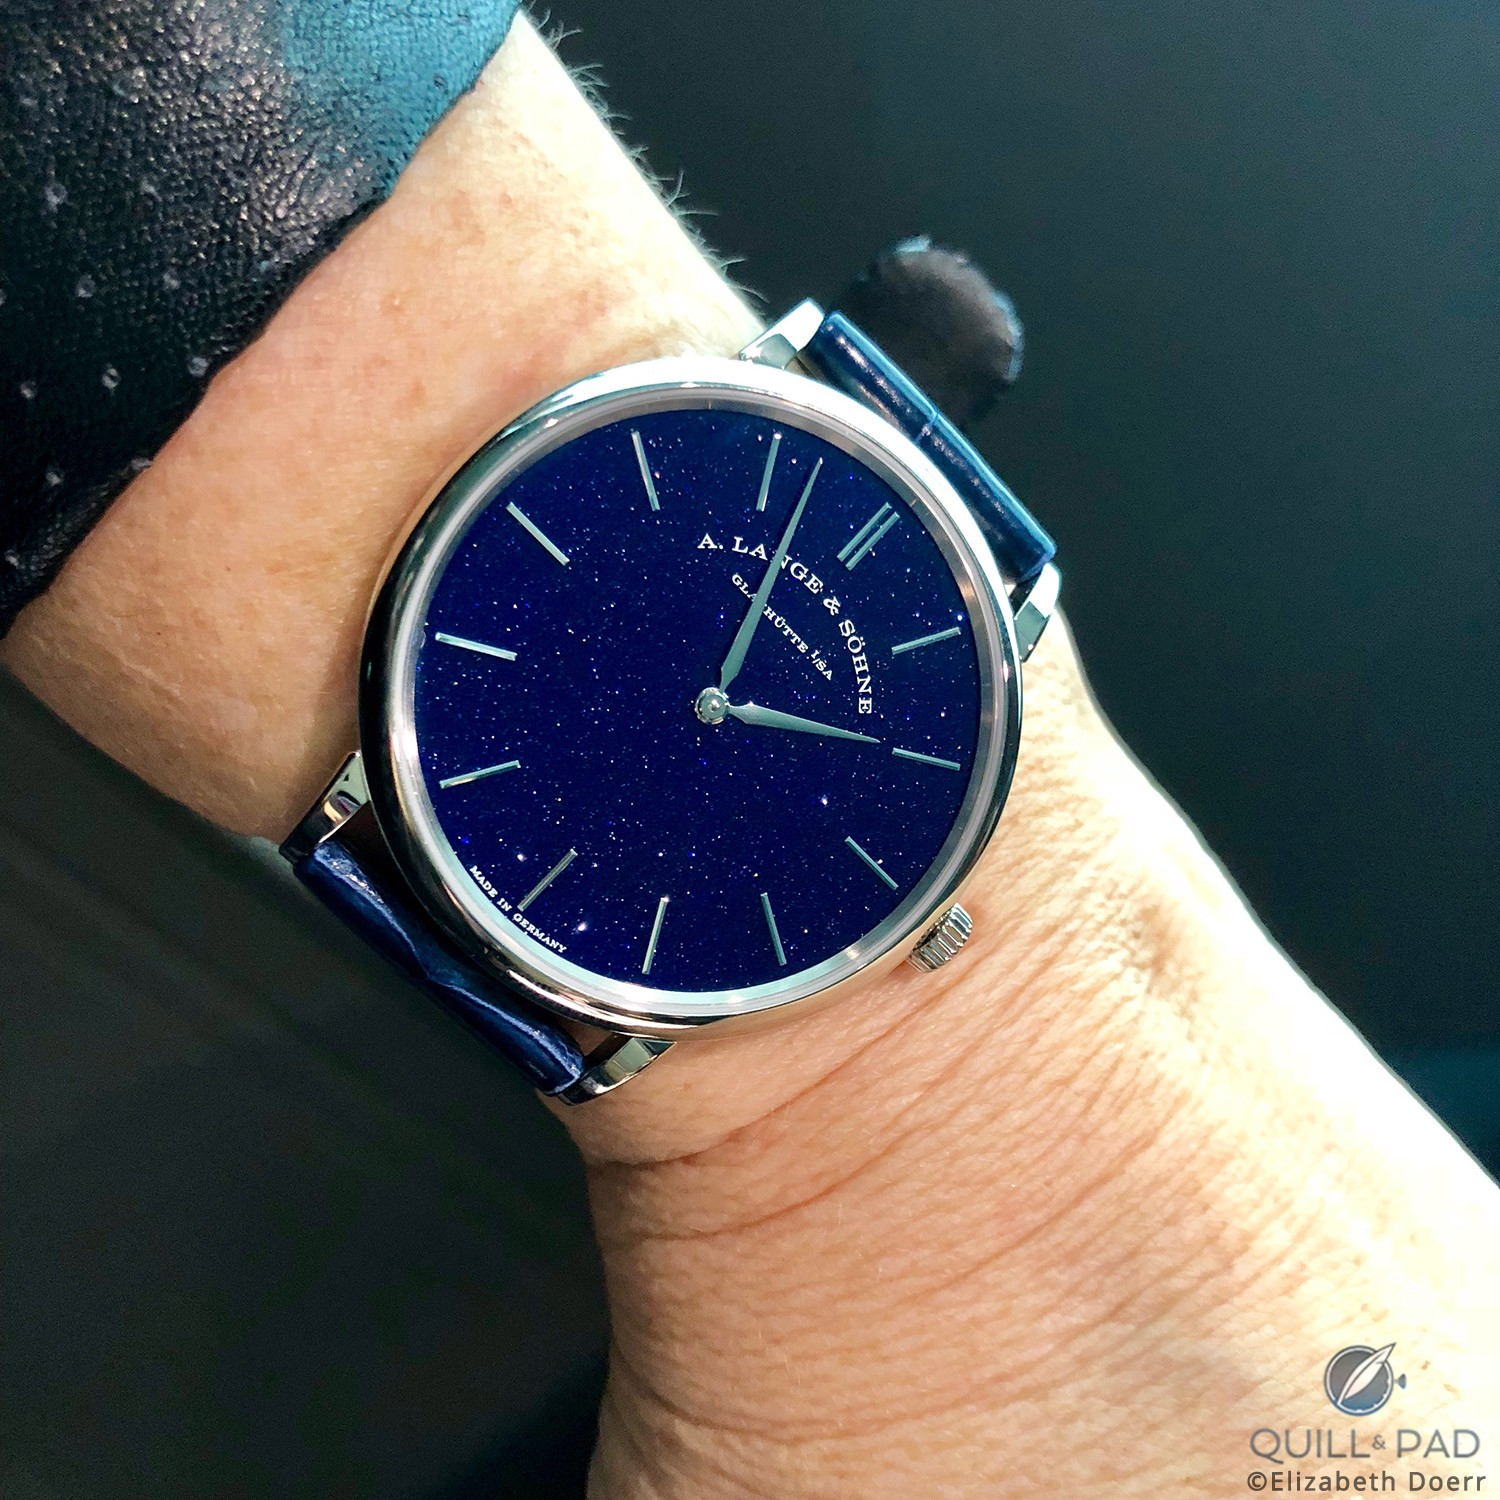 Lange & Söhne introduced a very surprising model at SIHH 2018: the Saxonia Thin with aventurine dial.